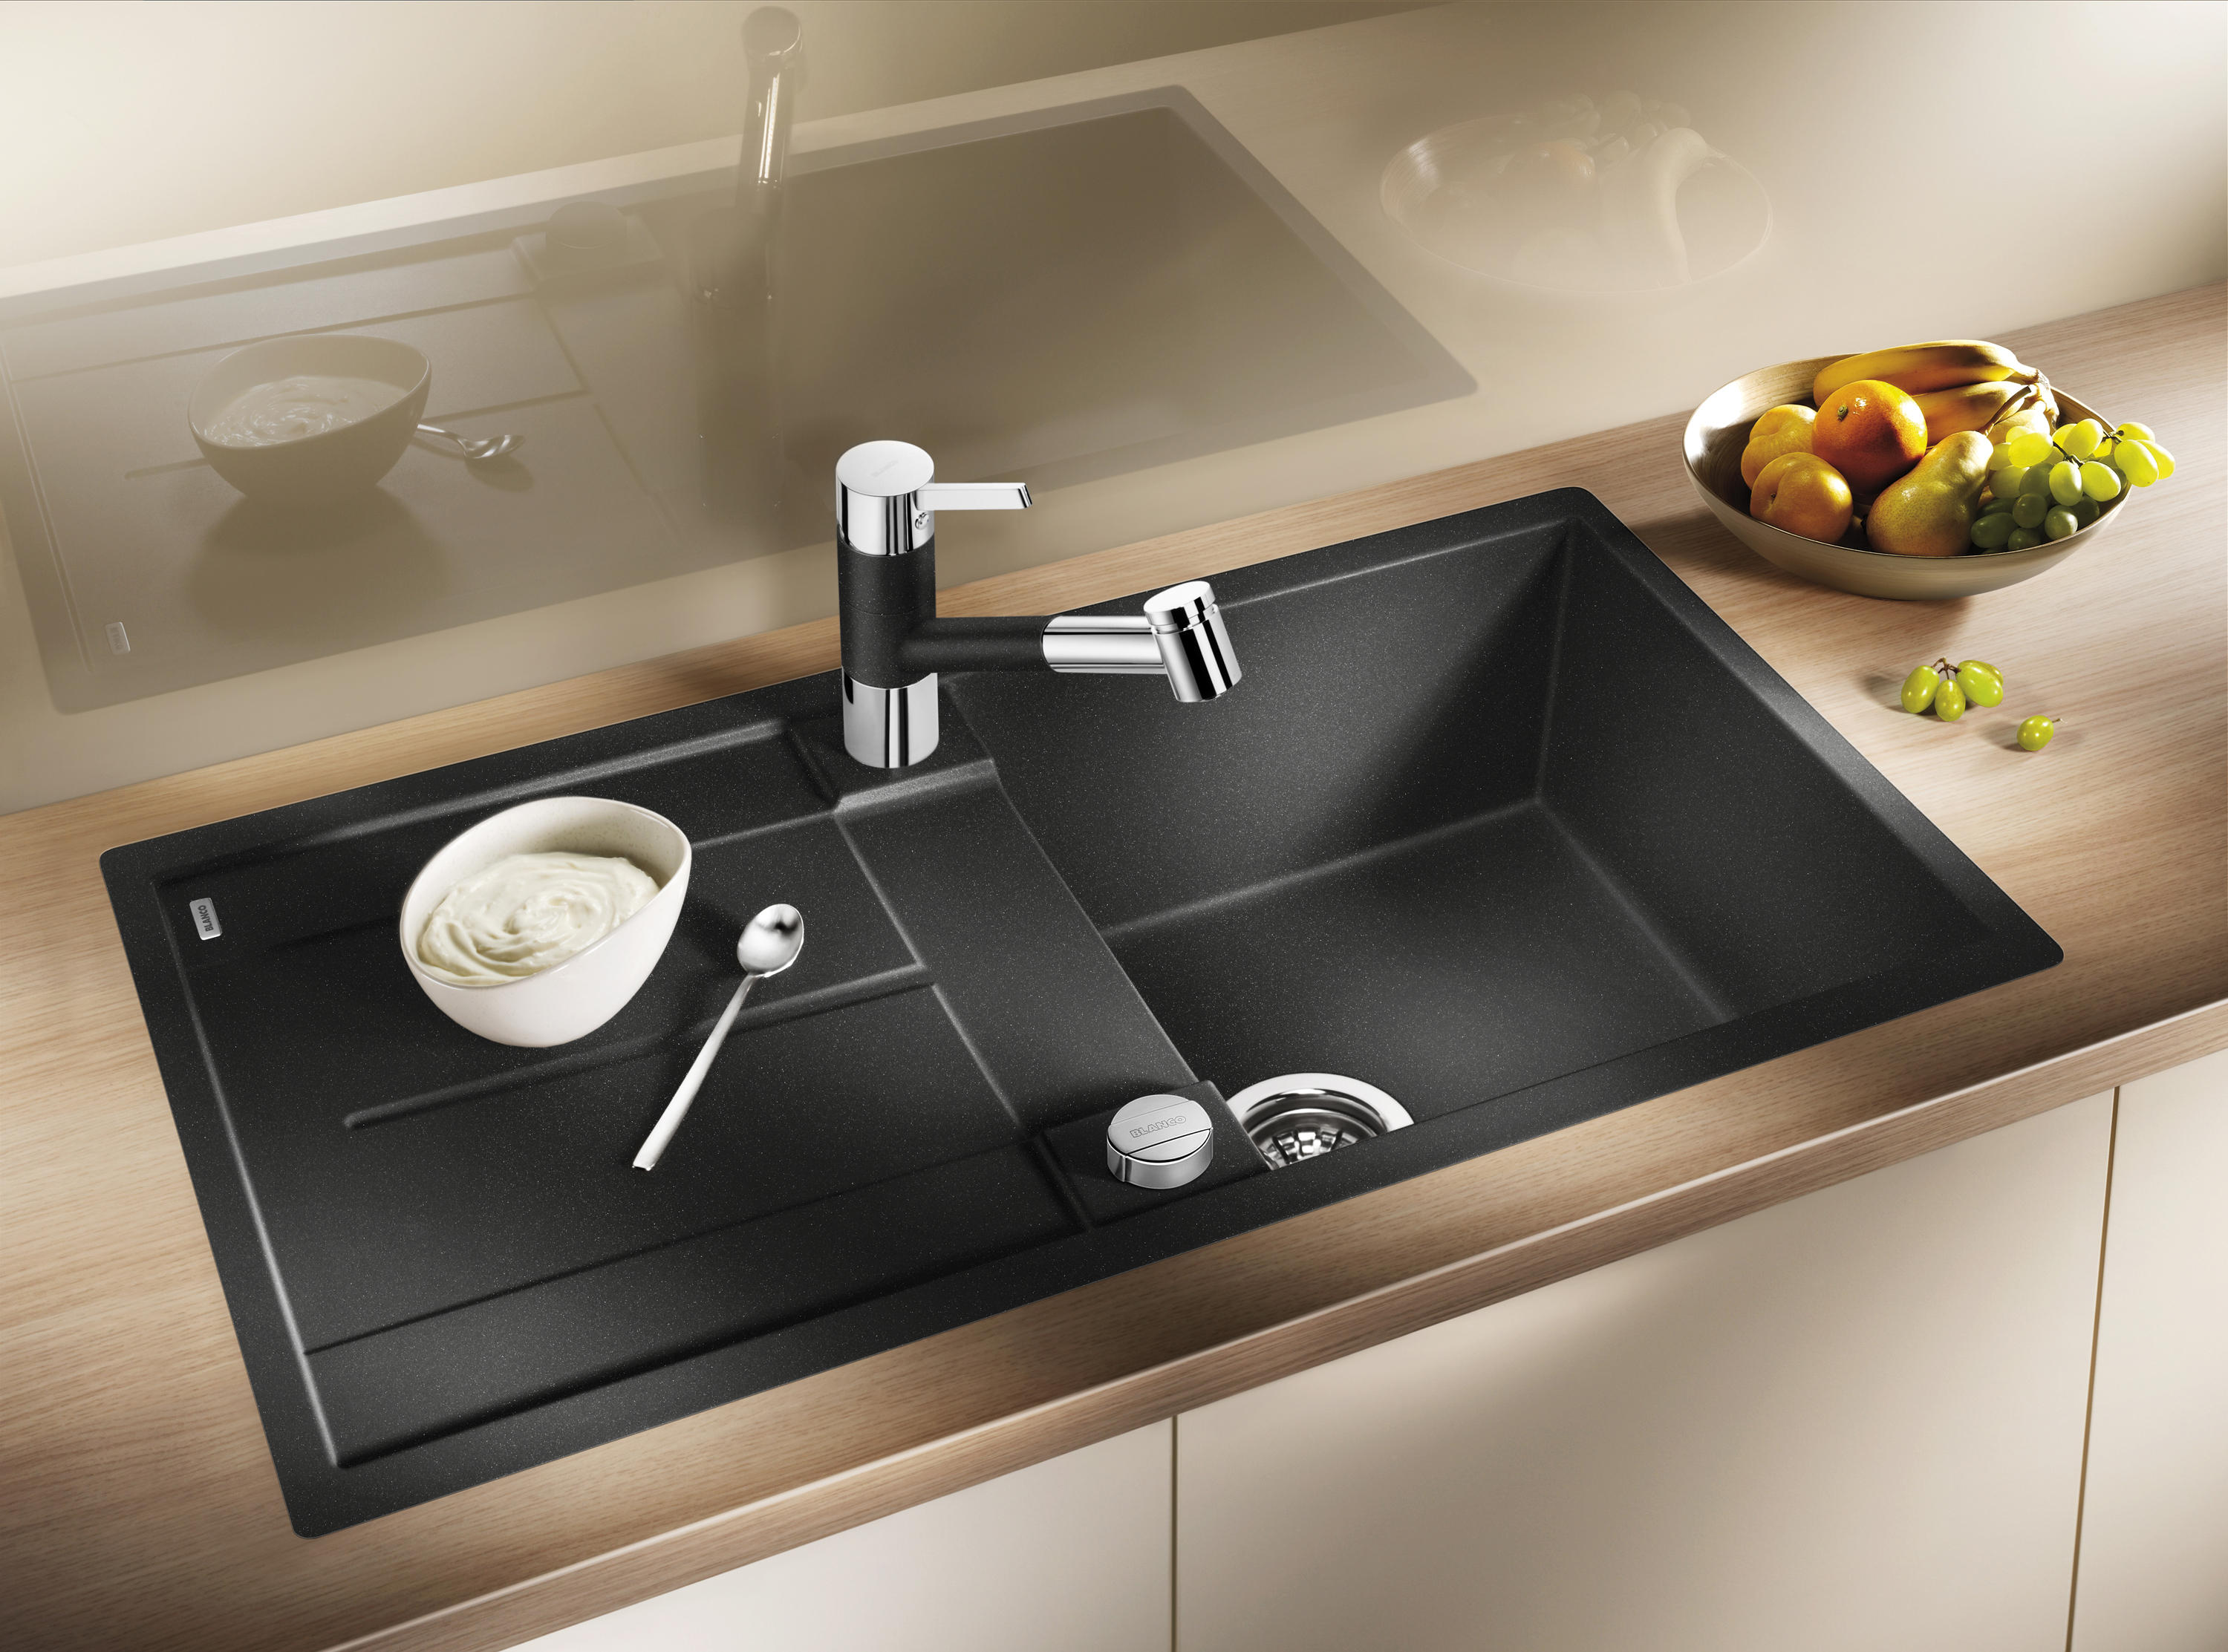 Küche Spülen Blanco Metra 45 S Silgranit Anthracite Kitchen Sinks